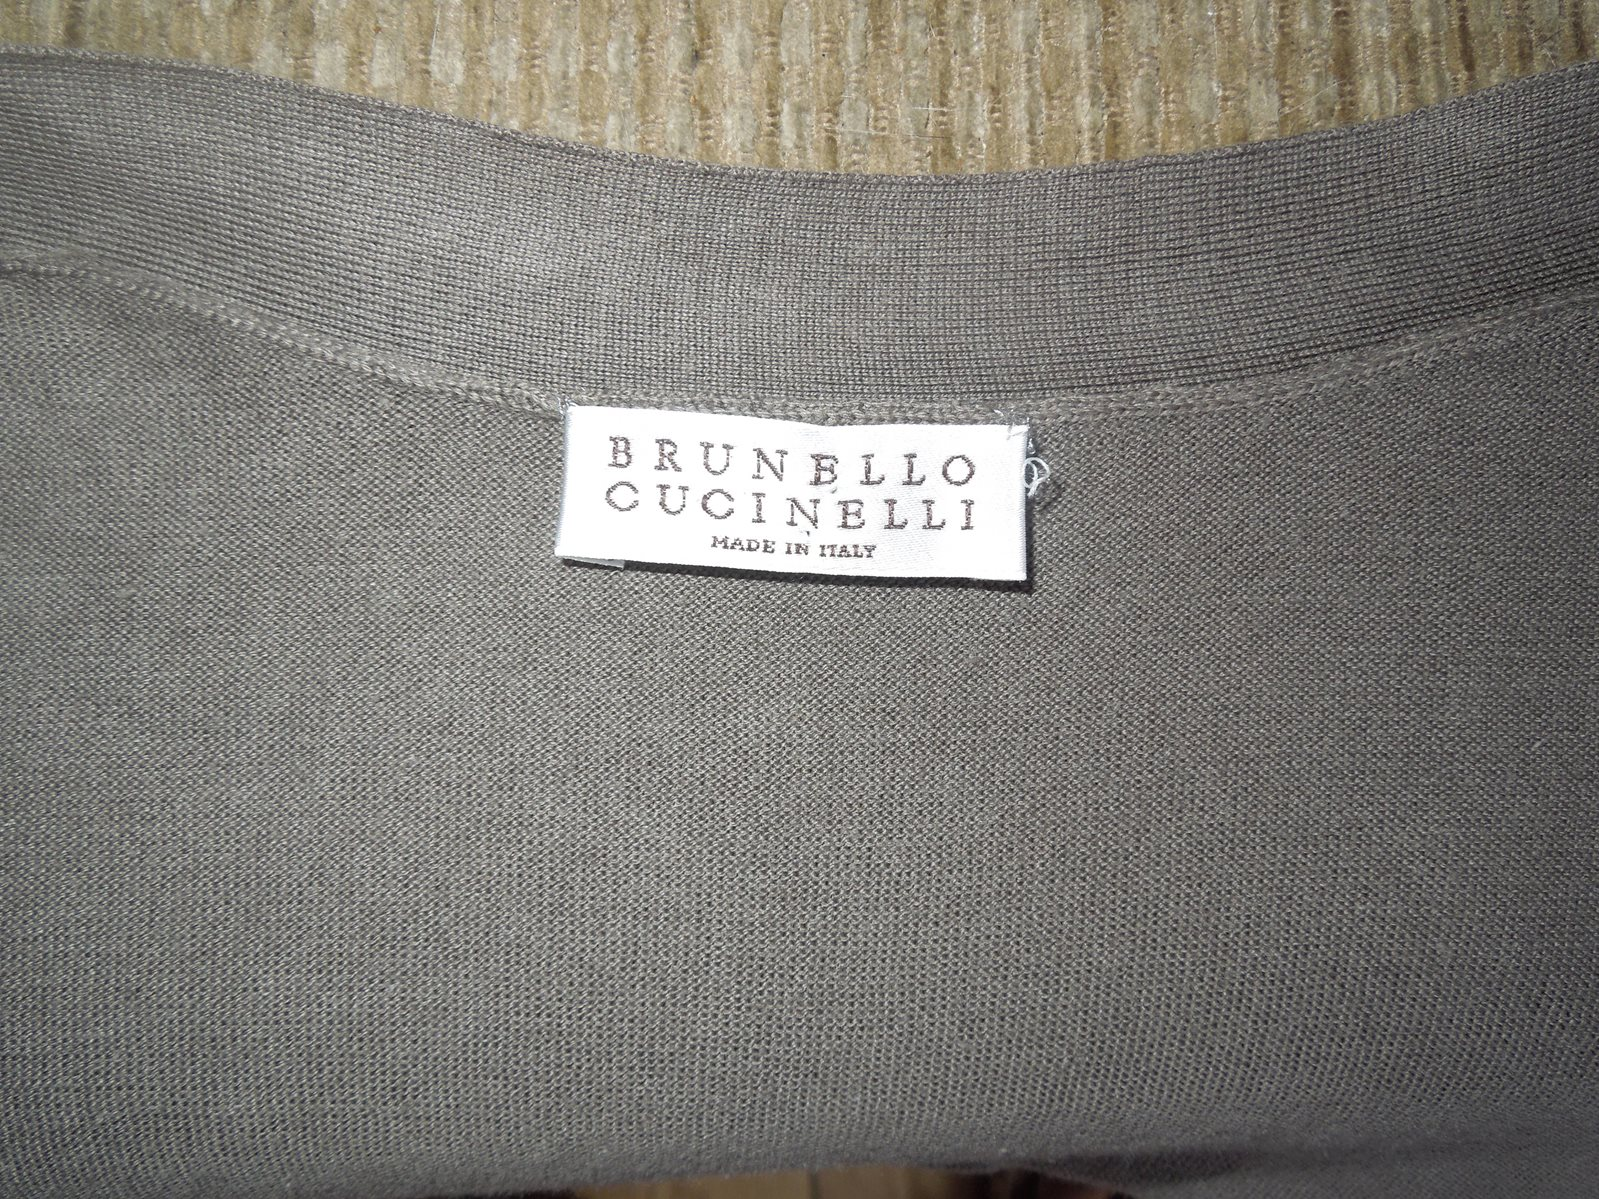 Brunello Cucinelli - The Loft, London